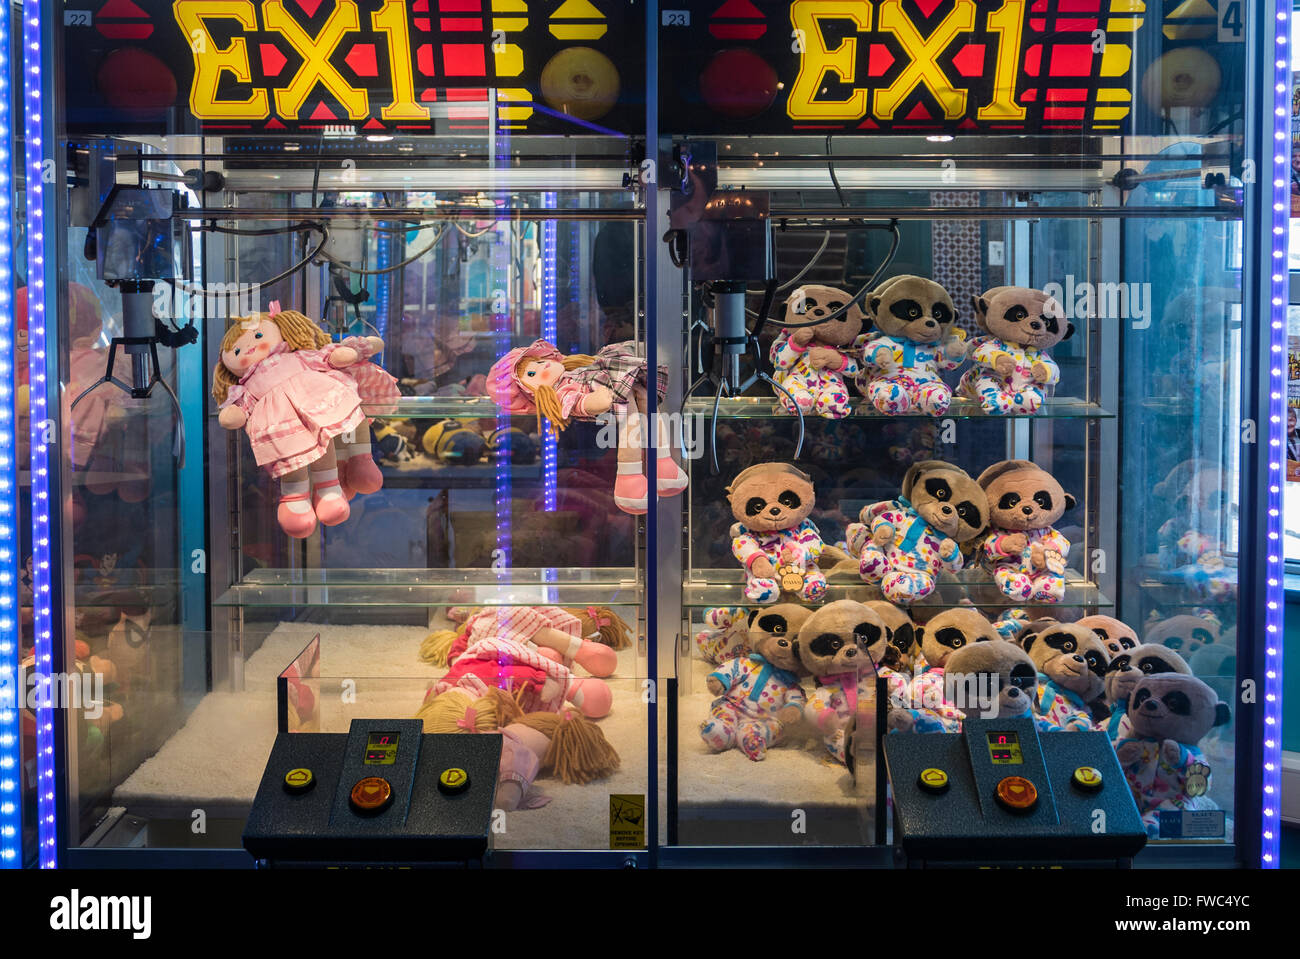 Toy grab claw machine at a funfair arcade - Stock Image